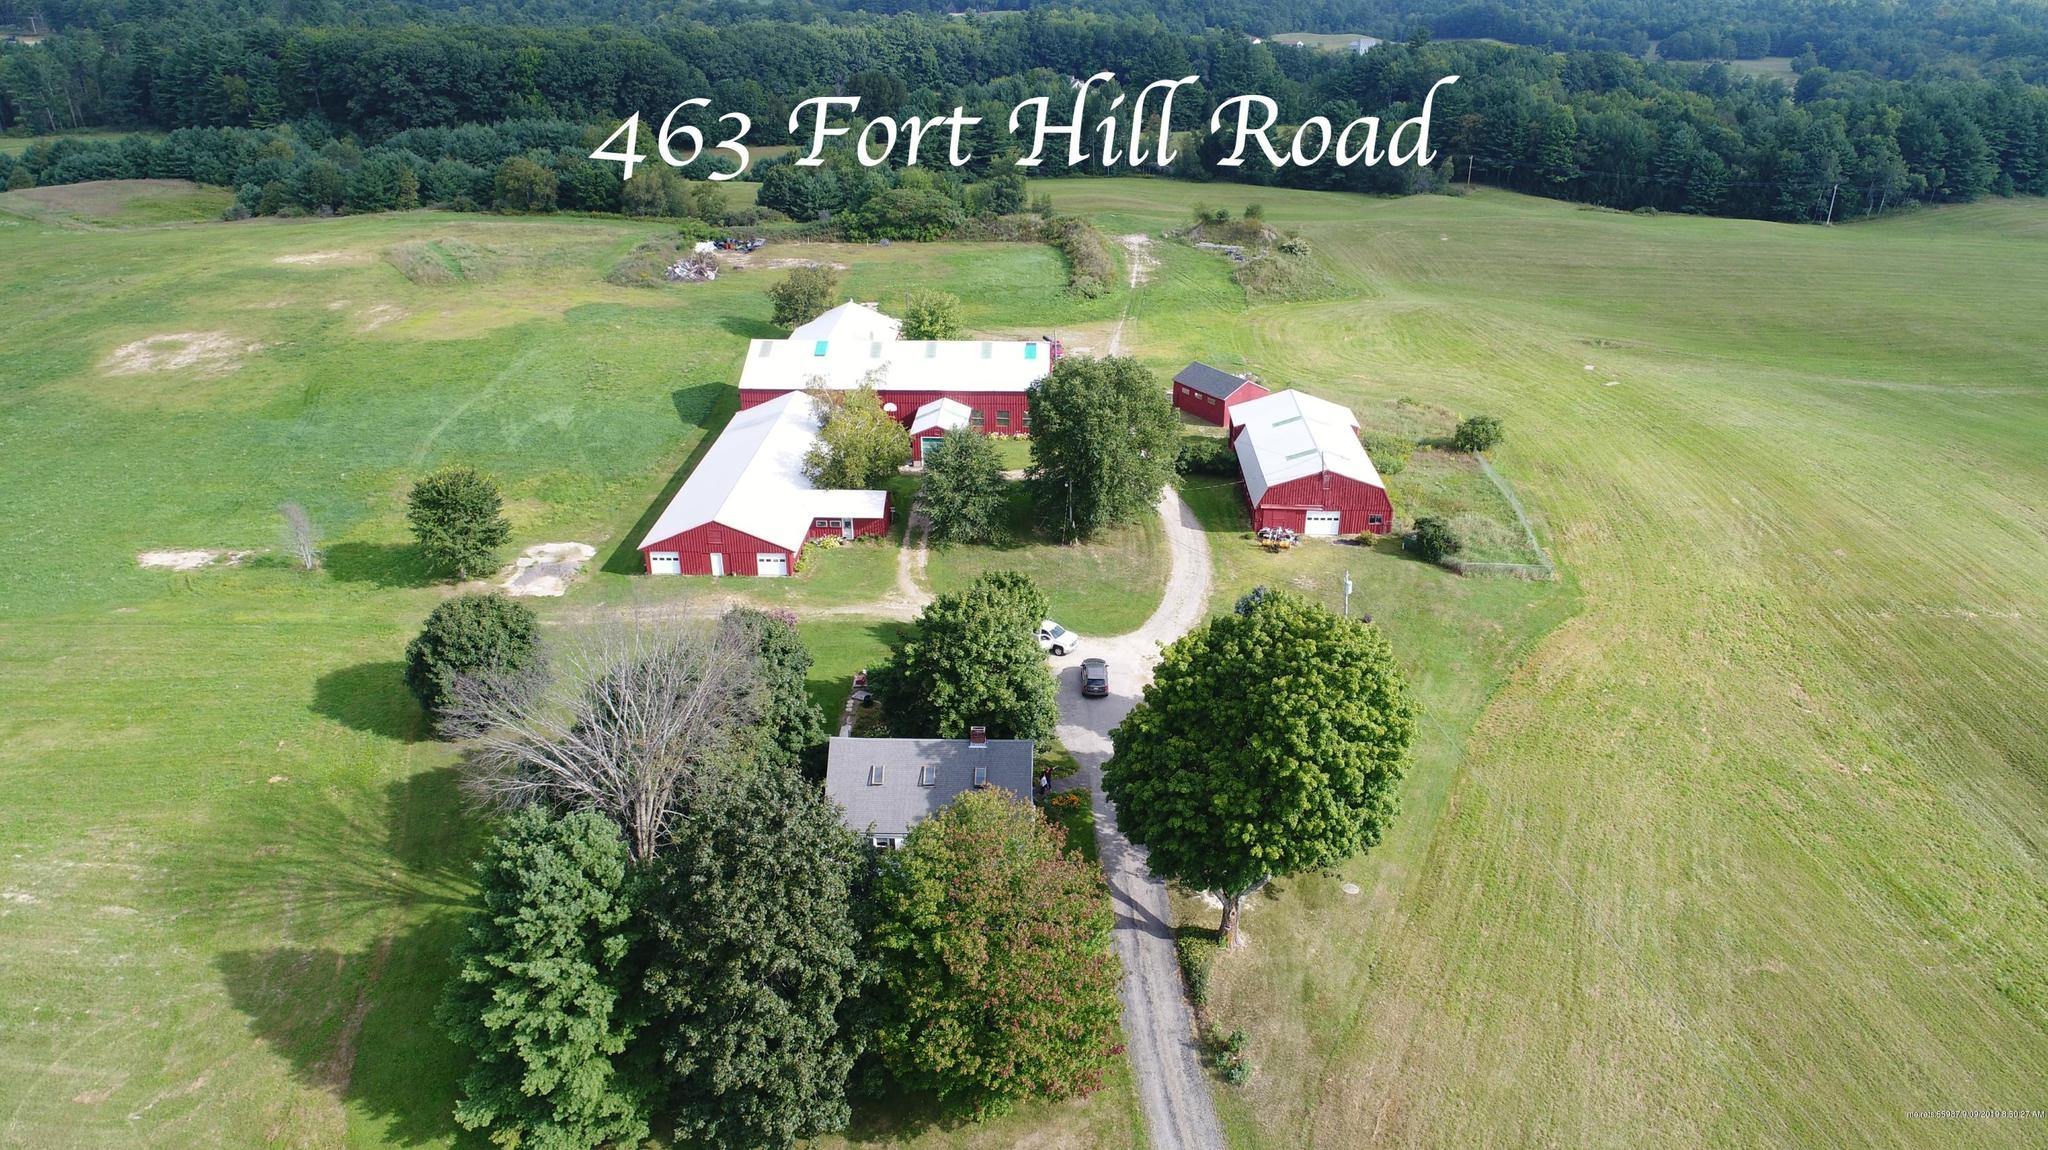 Photo of 463 Fort Hill Road Gorham ME 04038